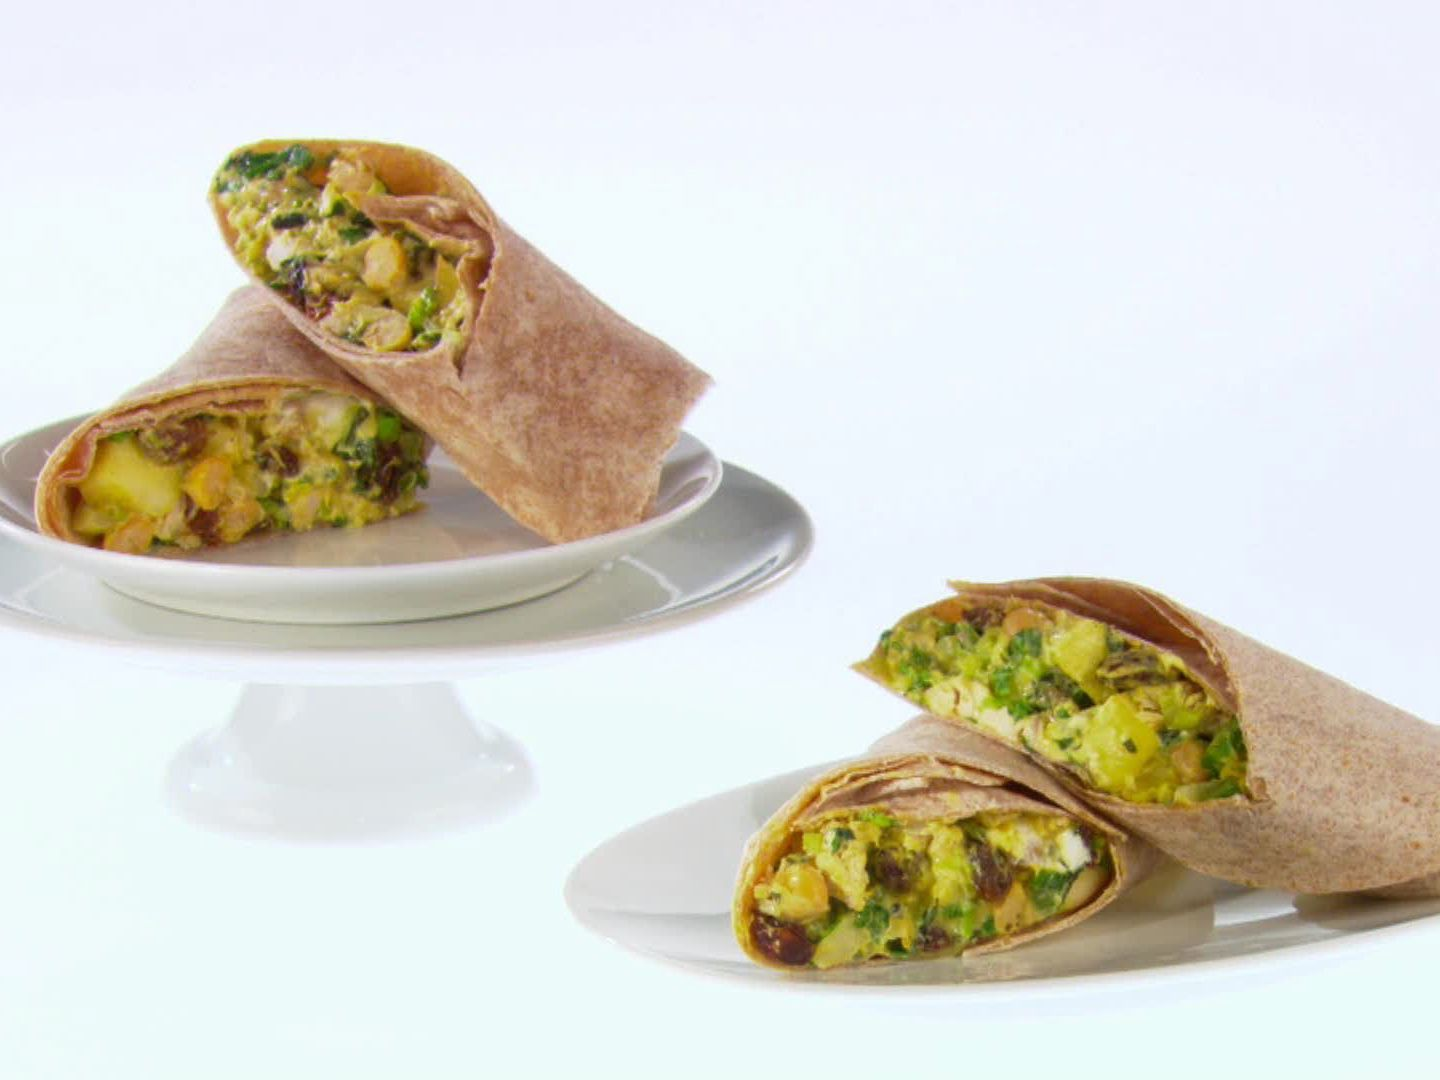 Curried chicken and apple wraps recipe giada de laurentiis curried chicken and apple wraps forumfinder Gallery